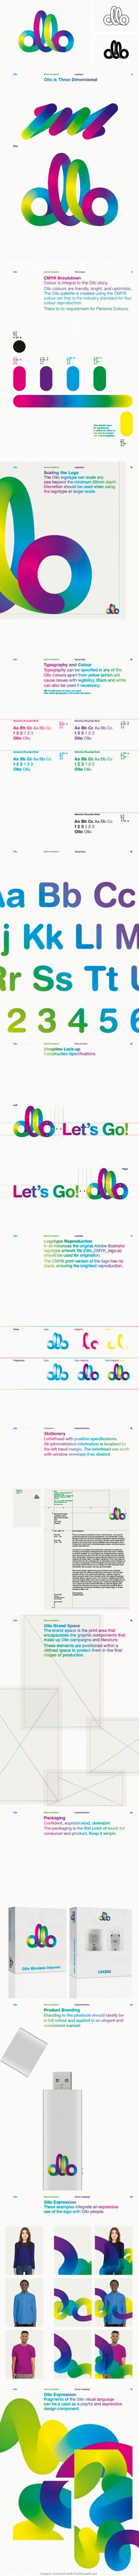 Bibliotheque | Brand creation including strategy, naming and visual identity for a new telecoms brand providing high-speed internet access to emerging markets. The Ollo concept is simple – one line of communication connecting communities where online demand sits alongside limited infrastructure.